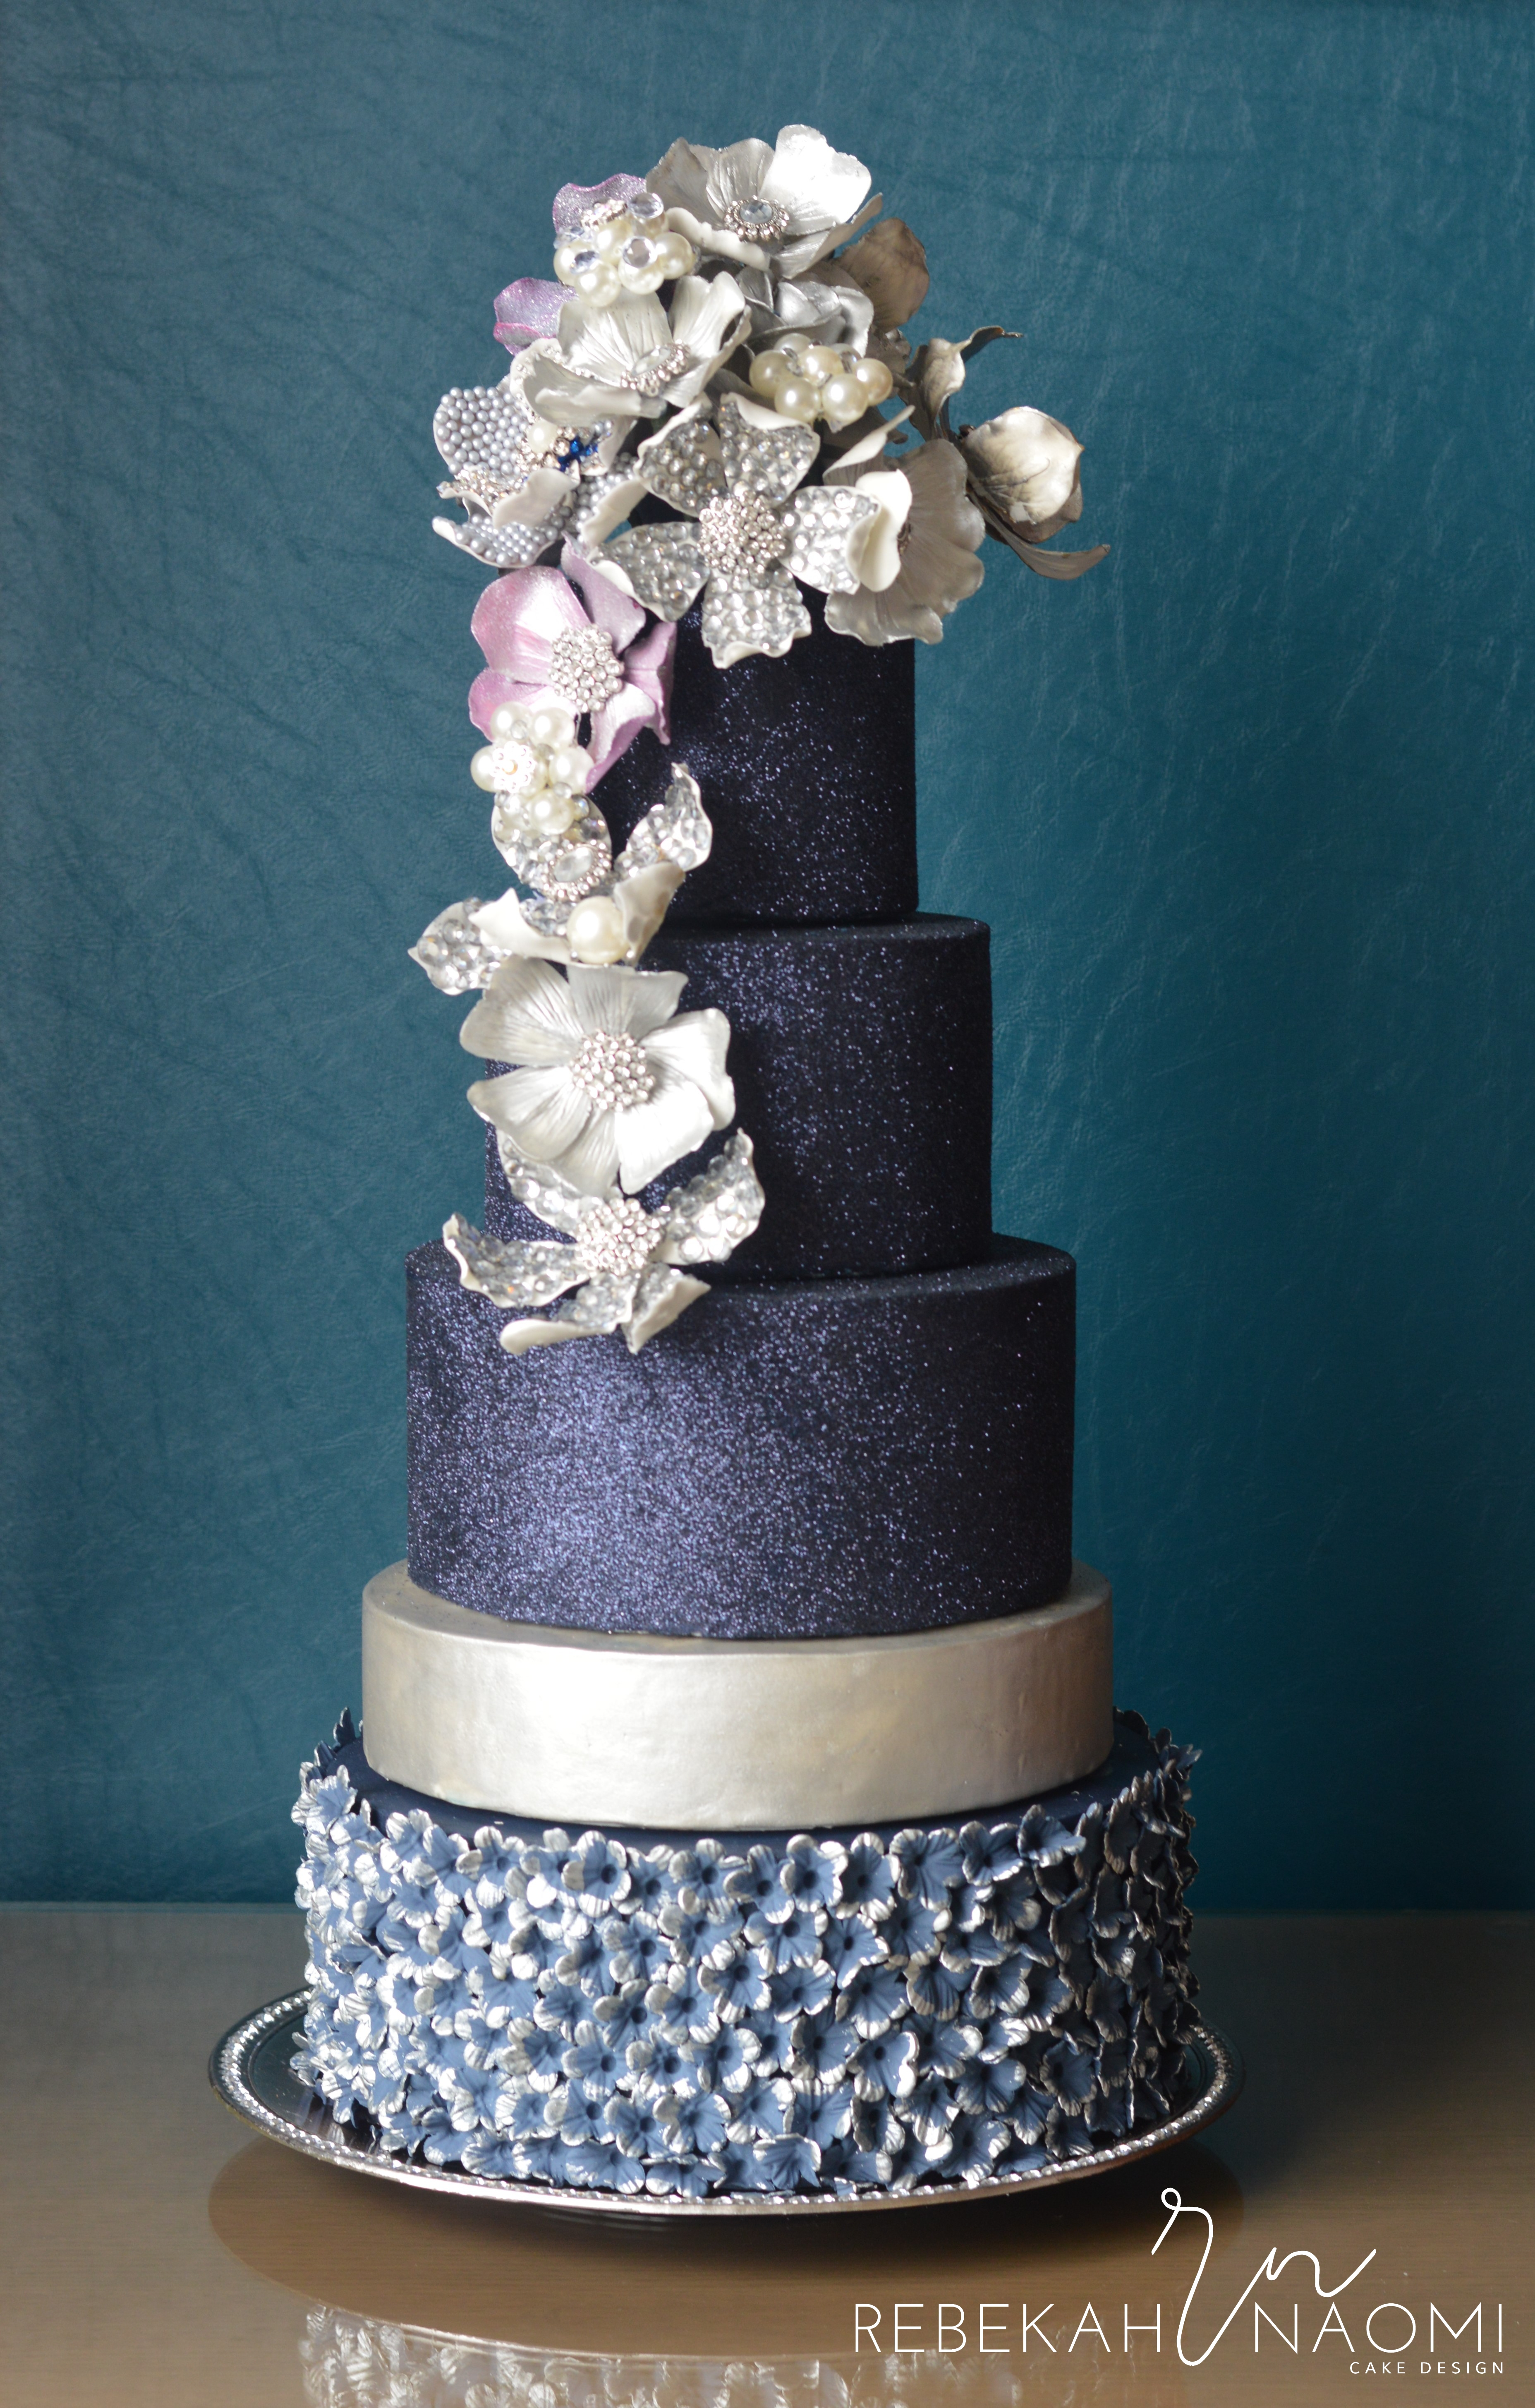 Bejeweled Cake For American Cake Decorating